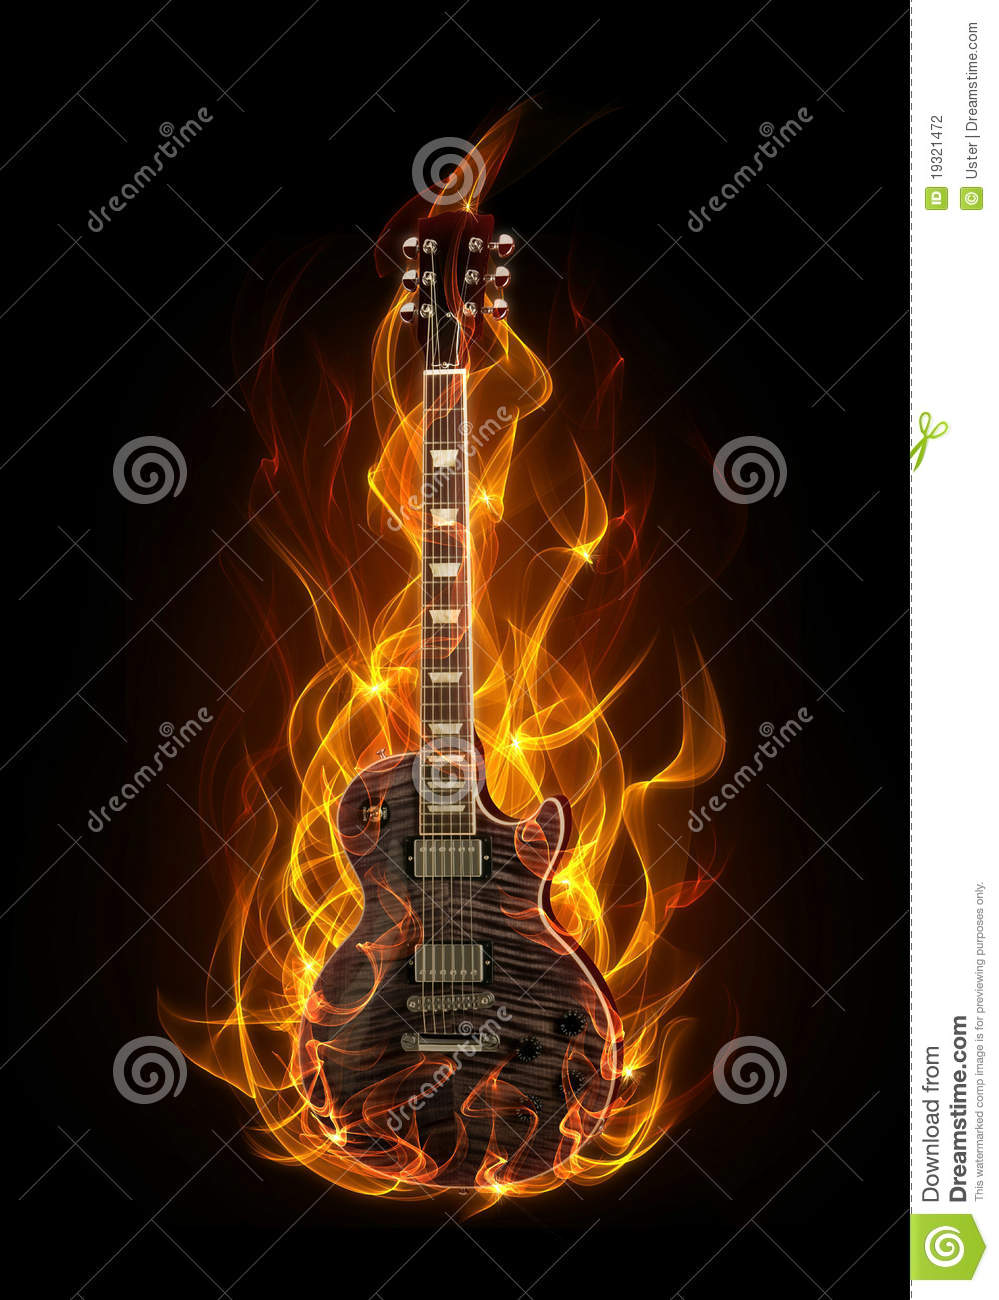 Black Electric Guitar With Flames Electric guitar in fire and